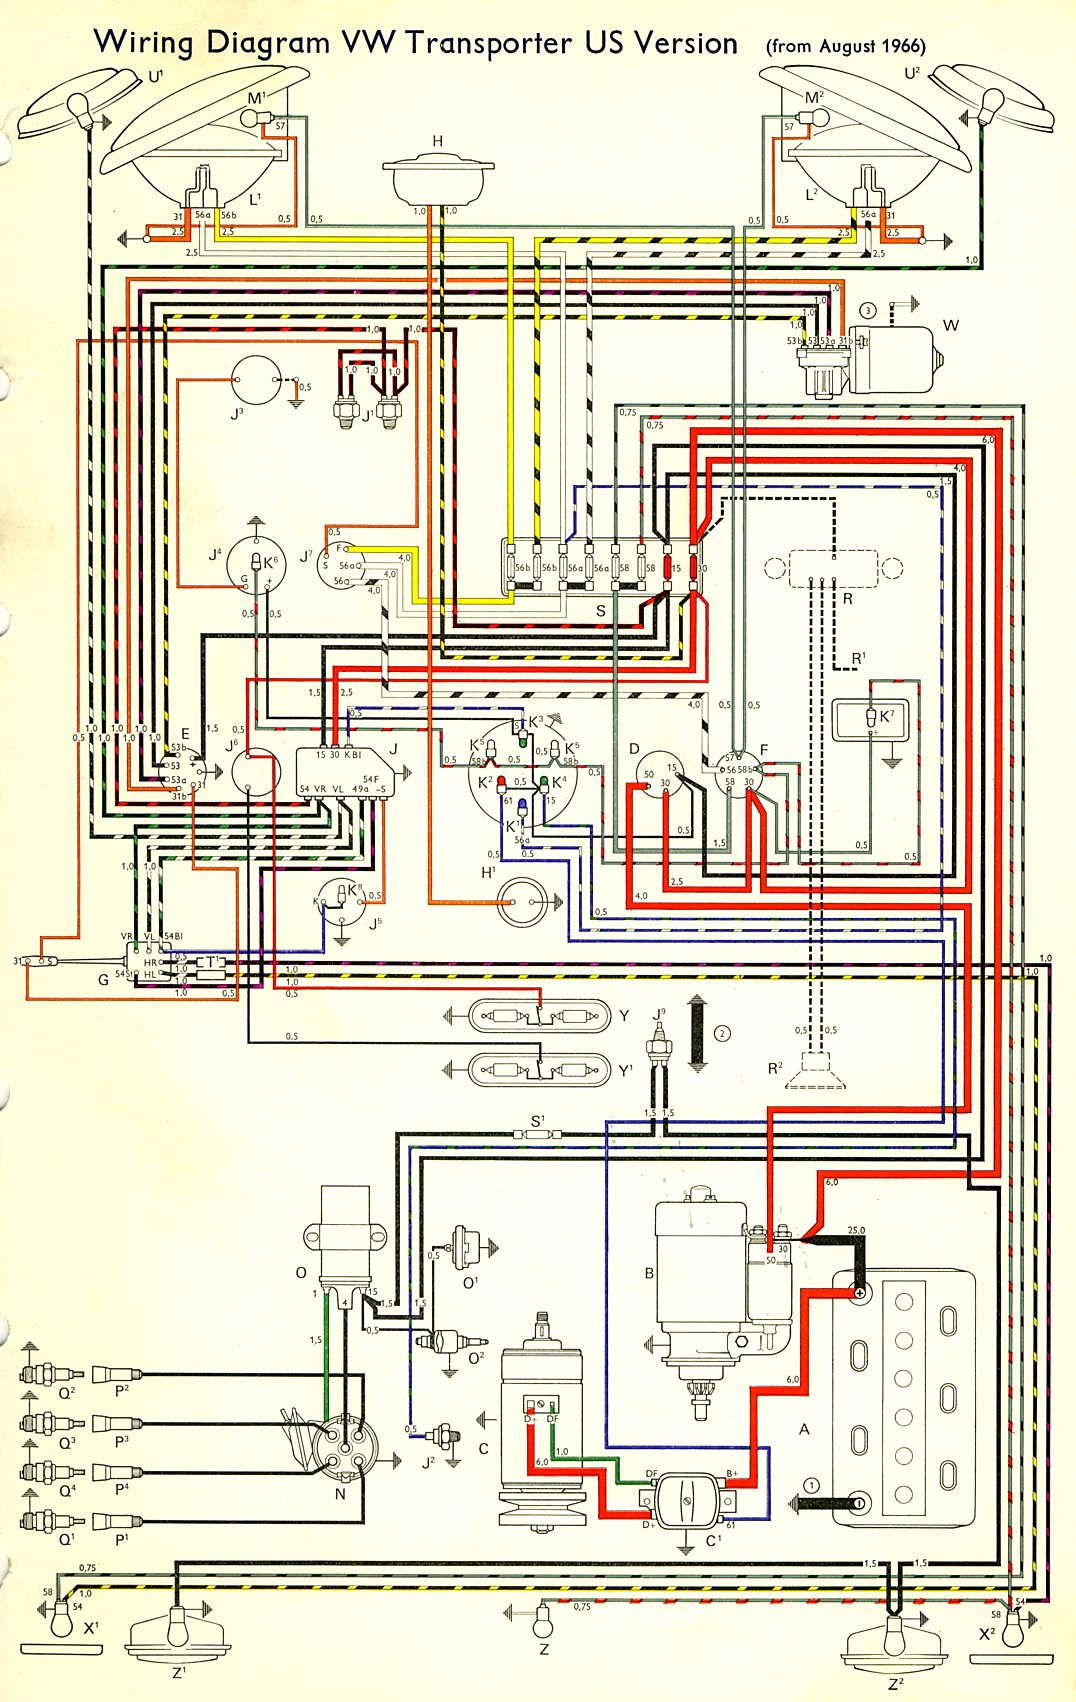 bus_67_USA 67 vw bus wiring harness 71 vw wiring harness \u2022 wiring diagrams Wiring Harness Diagram at gsmx.co